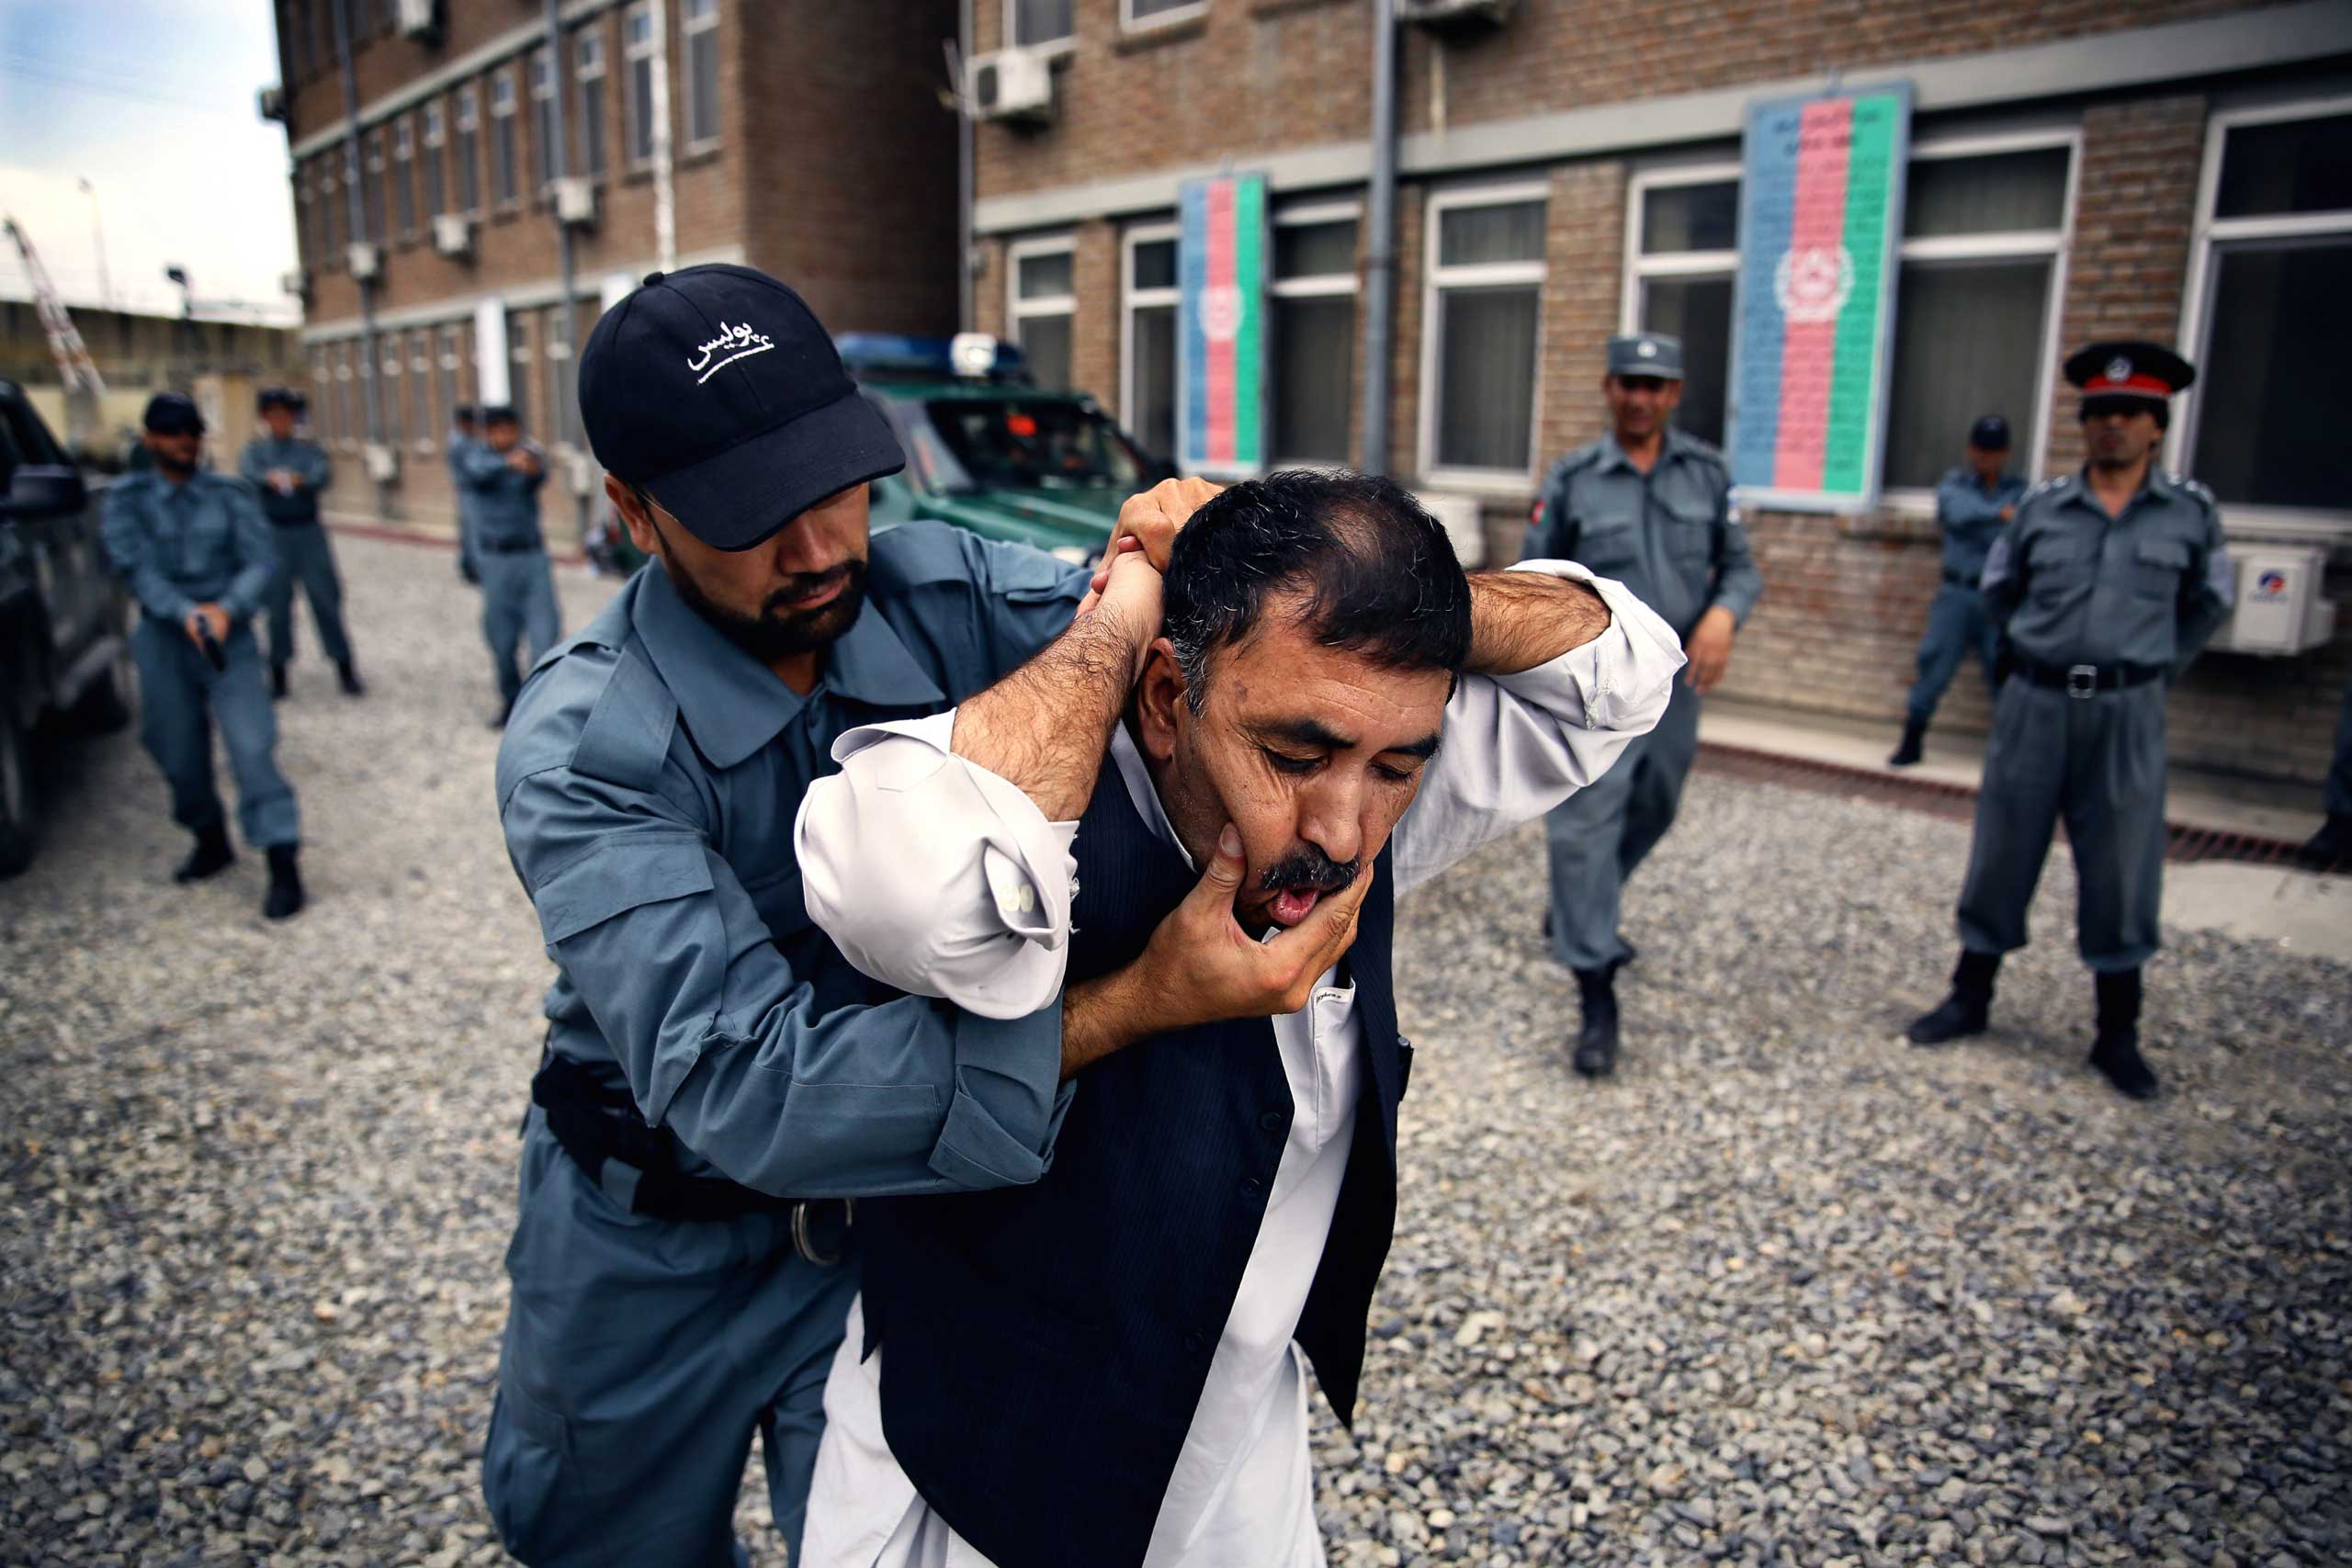 Afghan National Police officers from the Anti-Narcotics Quick Reaction Force (ANQRF) carry out a brutal stop and search scenario exercise intended for drug traffickers at a training centre in Kabul on Aug. 25, 2014.